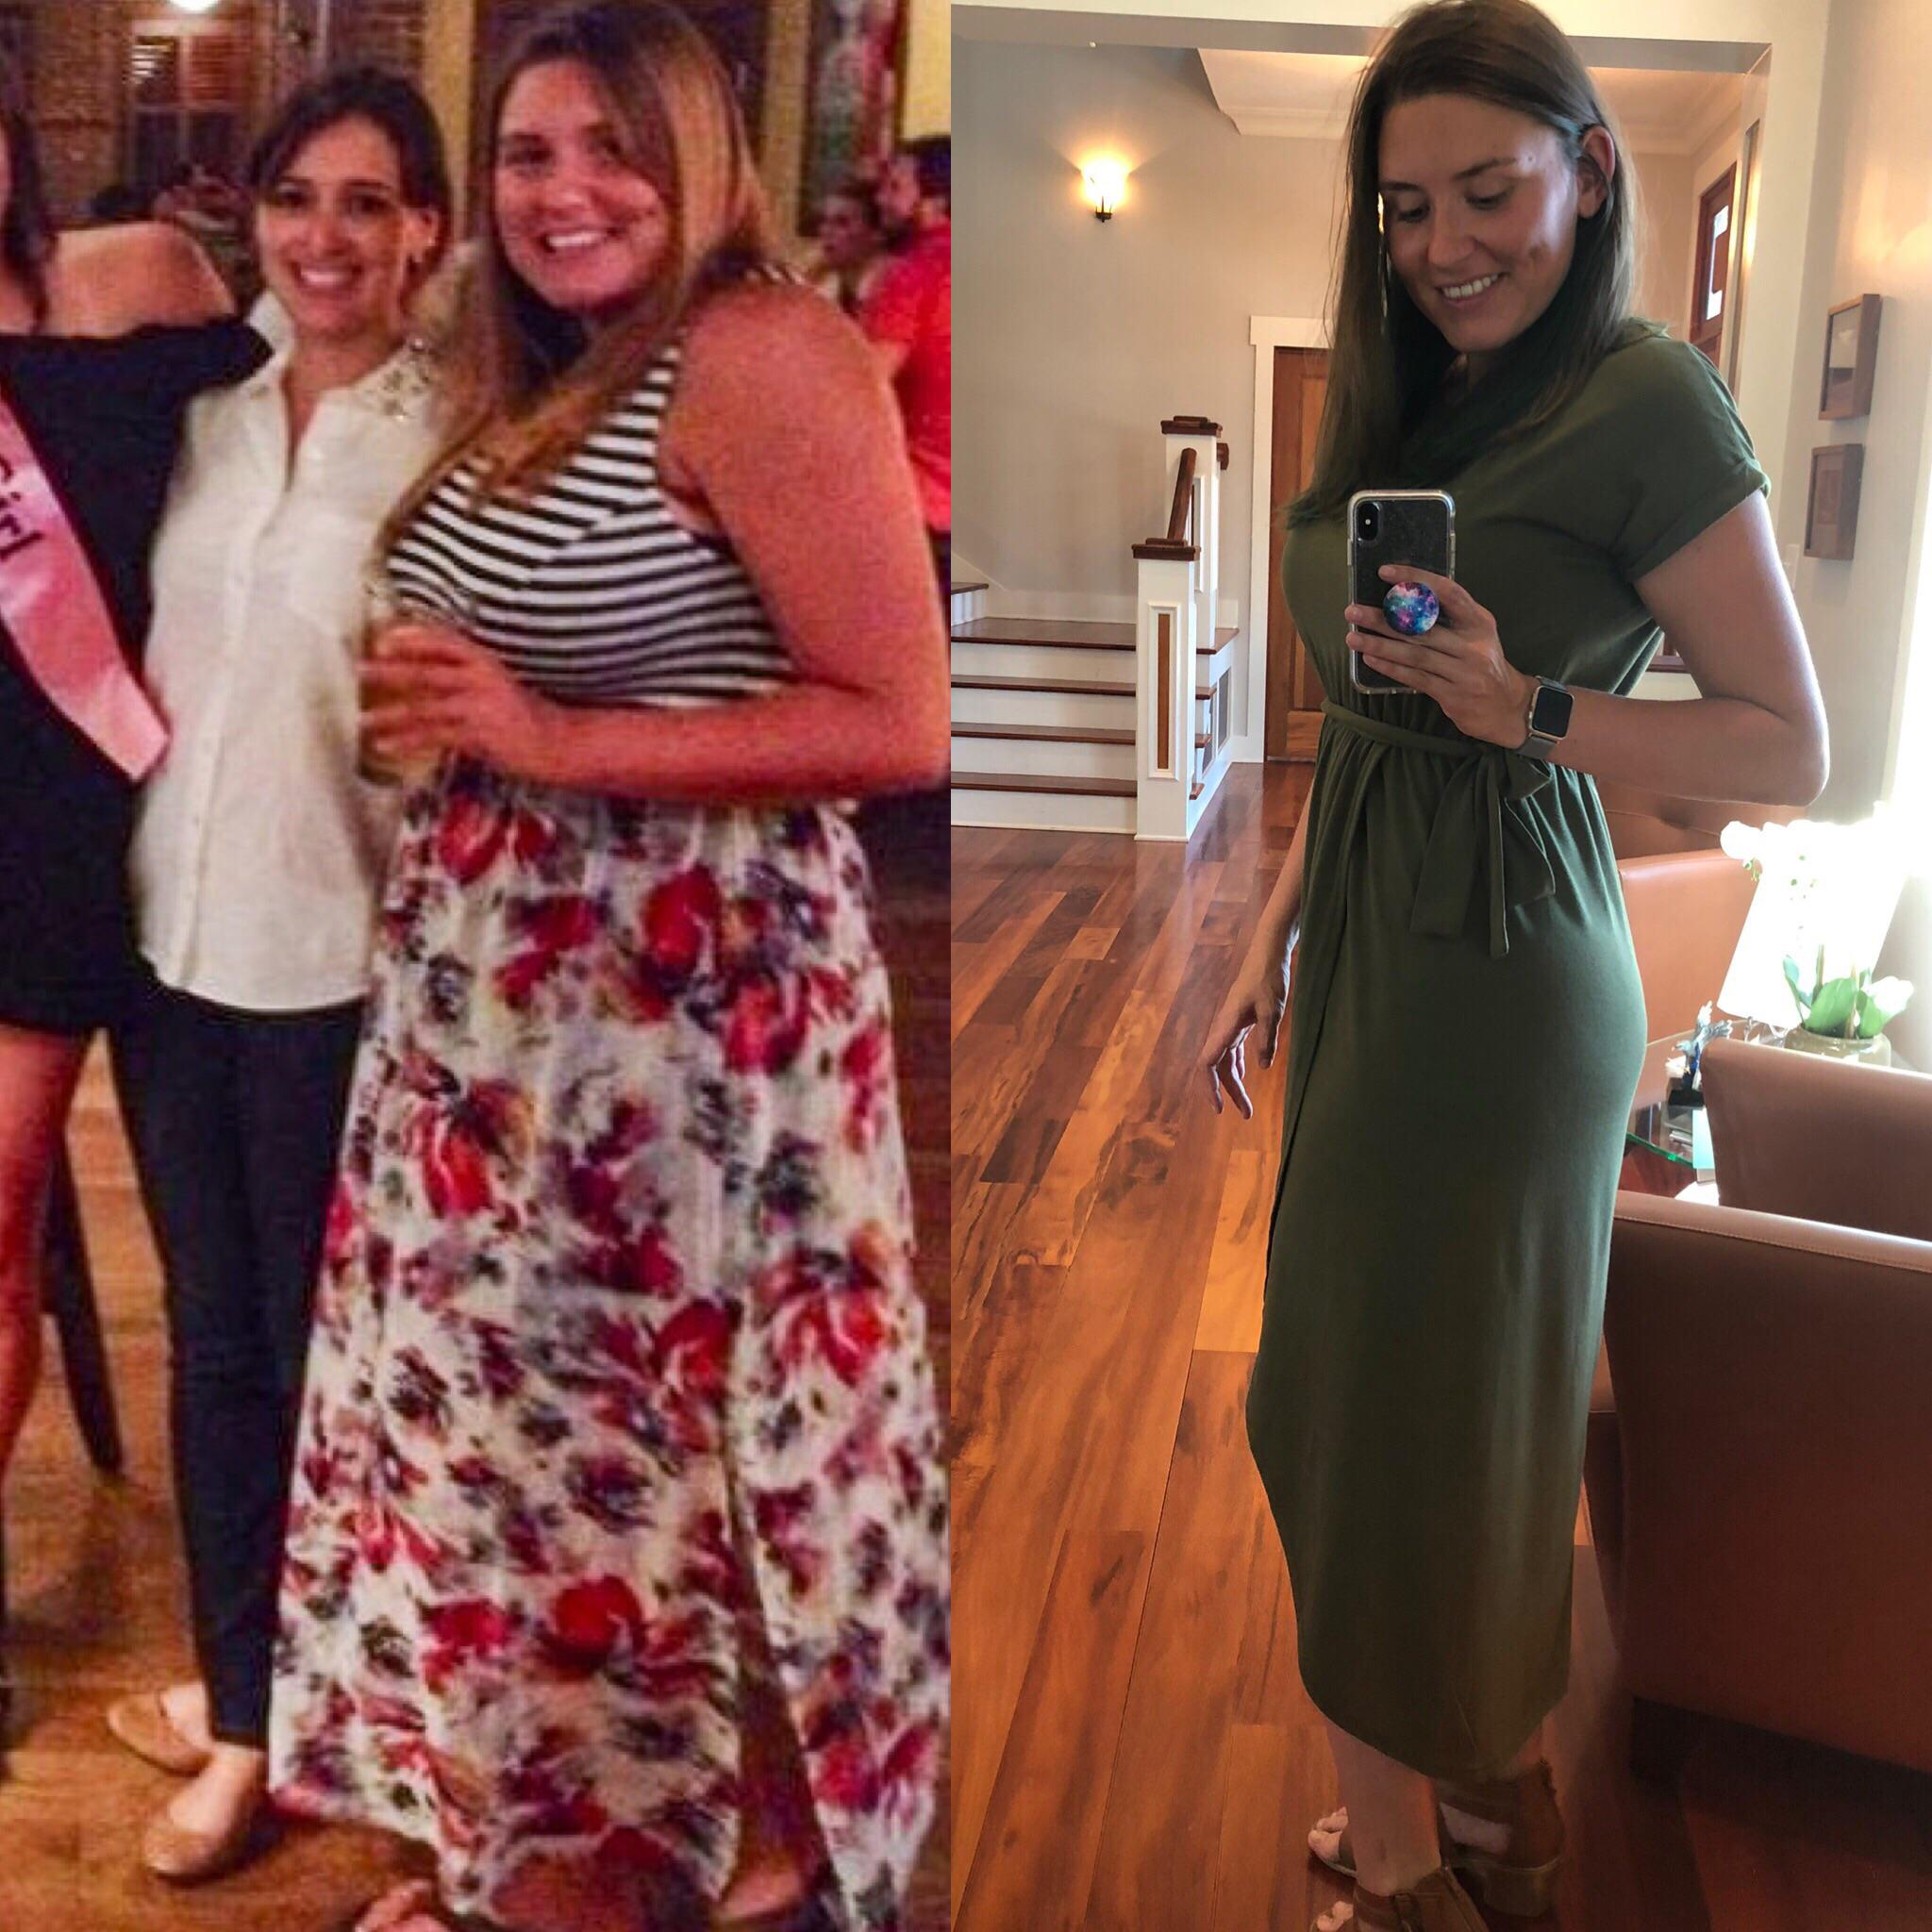 35 lbs Weight Loss 5 foot 9 Female 205 lbs to 170 lbs